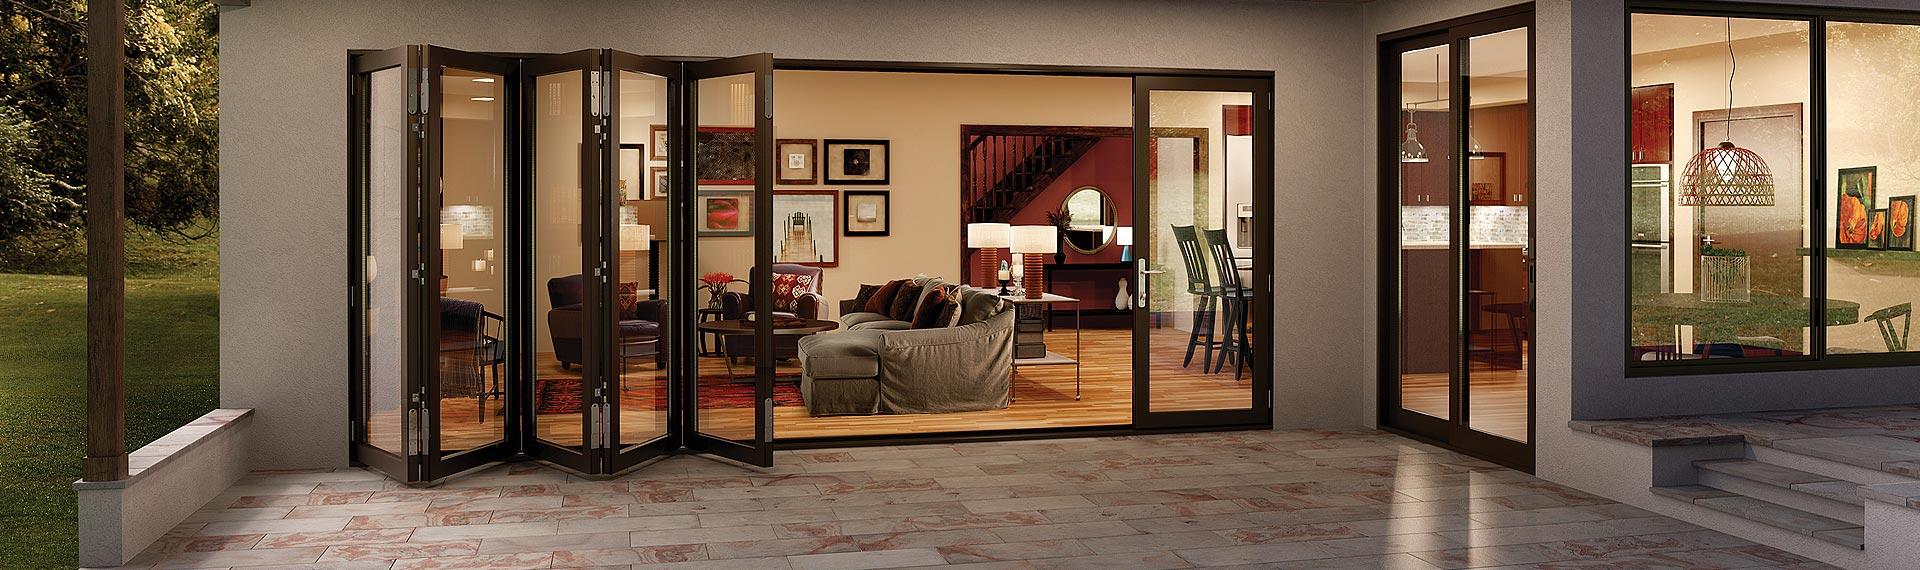 Bi fold glass walls aluminum moving glass wall systems for Folding window wall systems